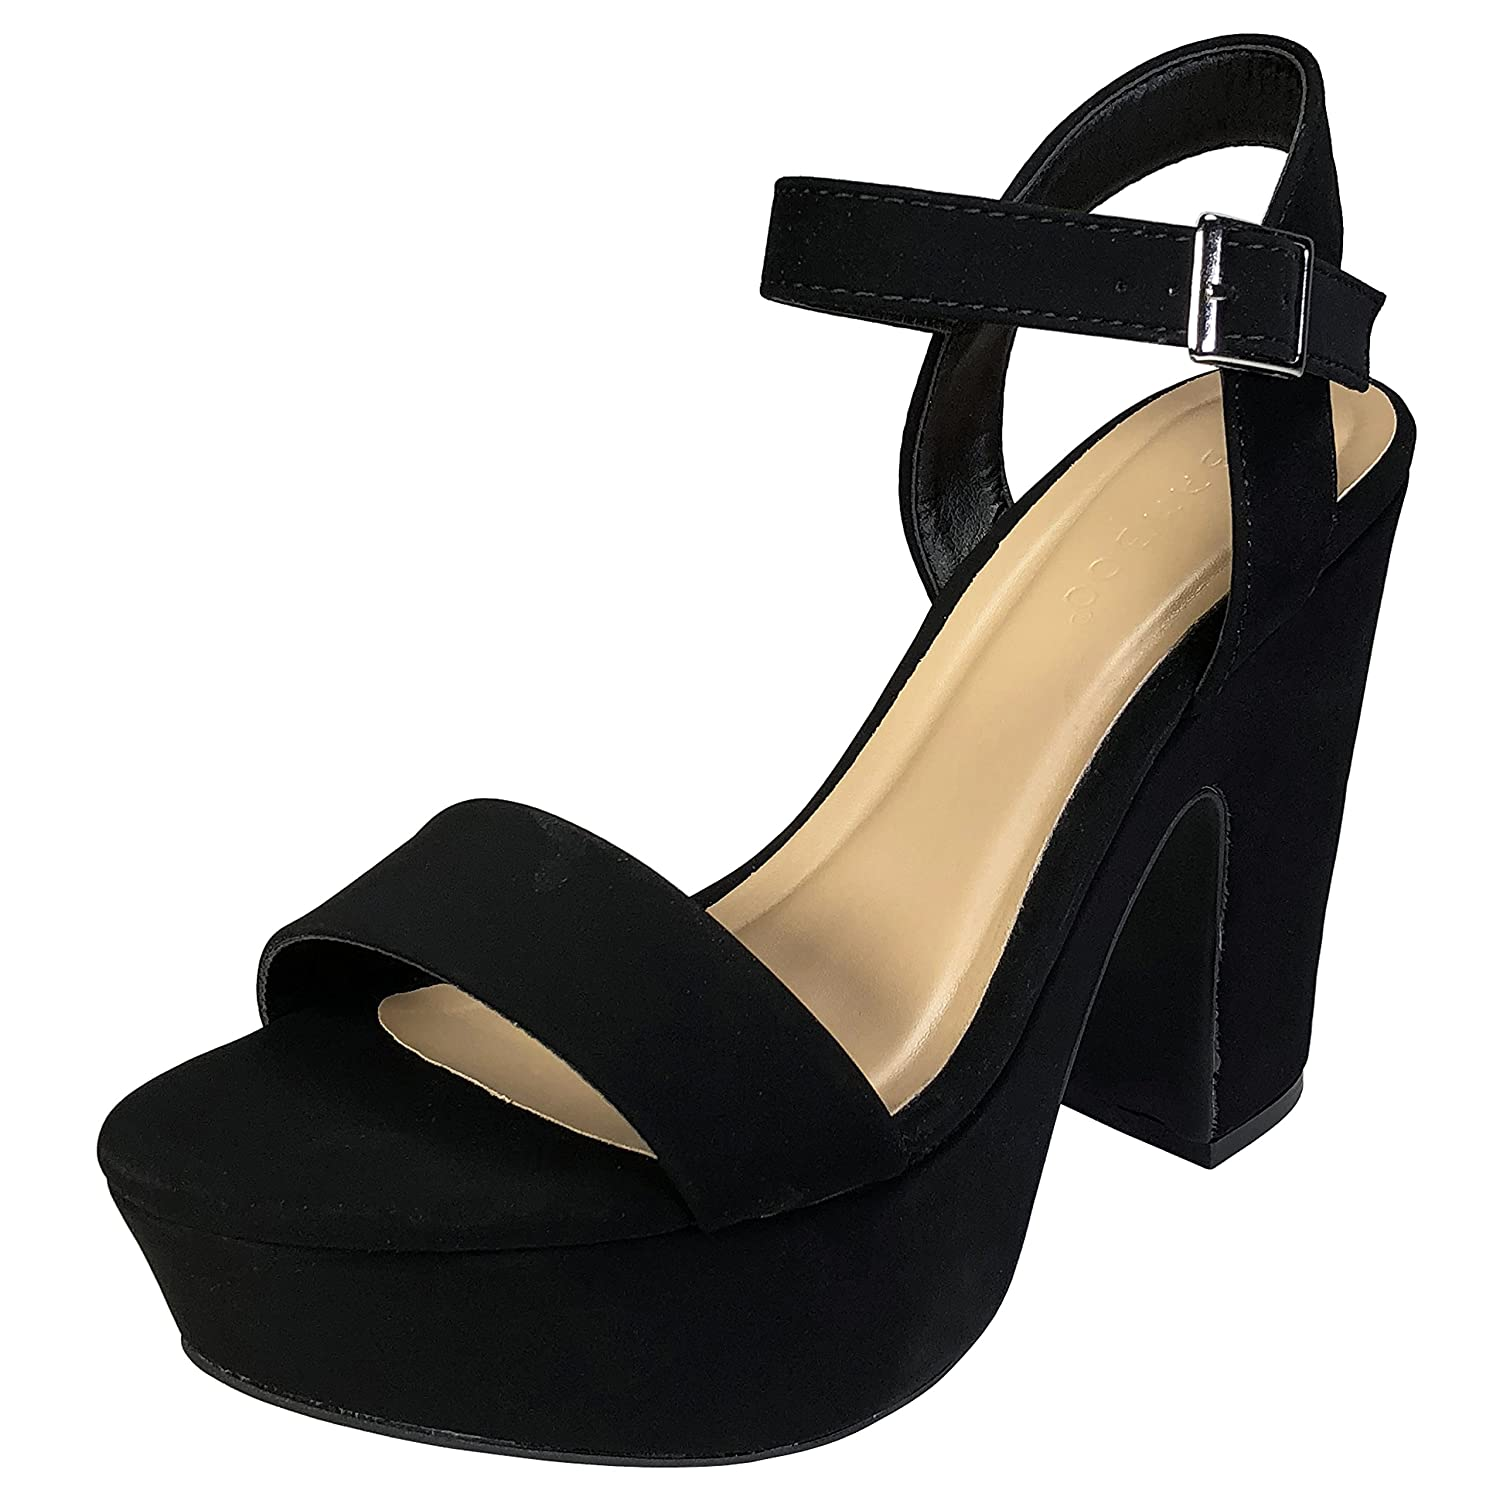 BAMBOO Women's One Band Chunky Heel Platform Sandal with Quarter Strap